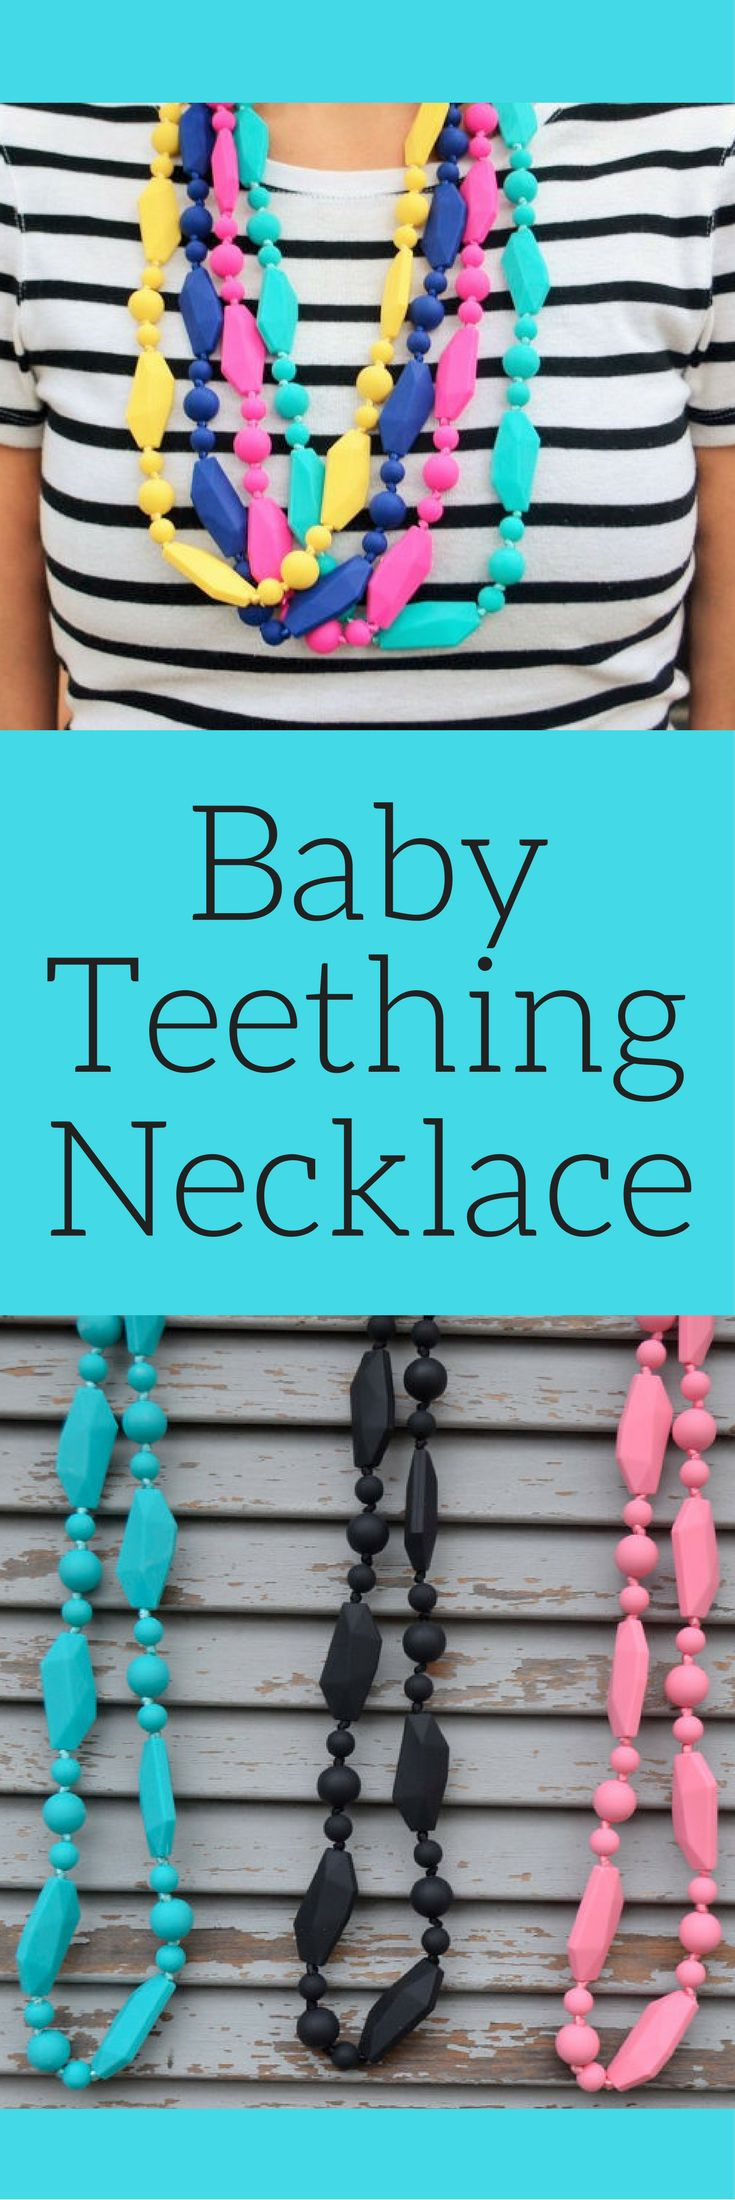 Silicon Baby Teething Necklace - Baby Shower Gift New Mom Gift - Chew Beads, Baby Teething bead necklace, baby gift idea, baby shower gift idea #ad #affiliatelink